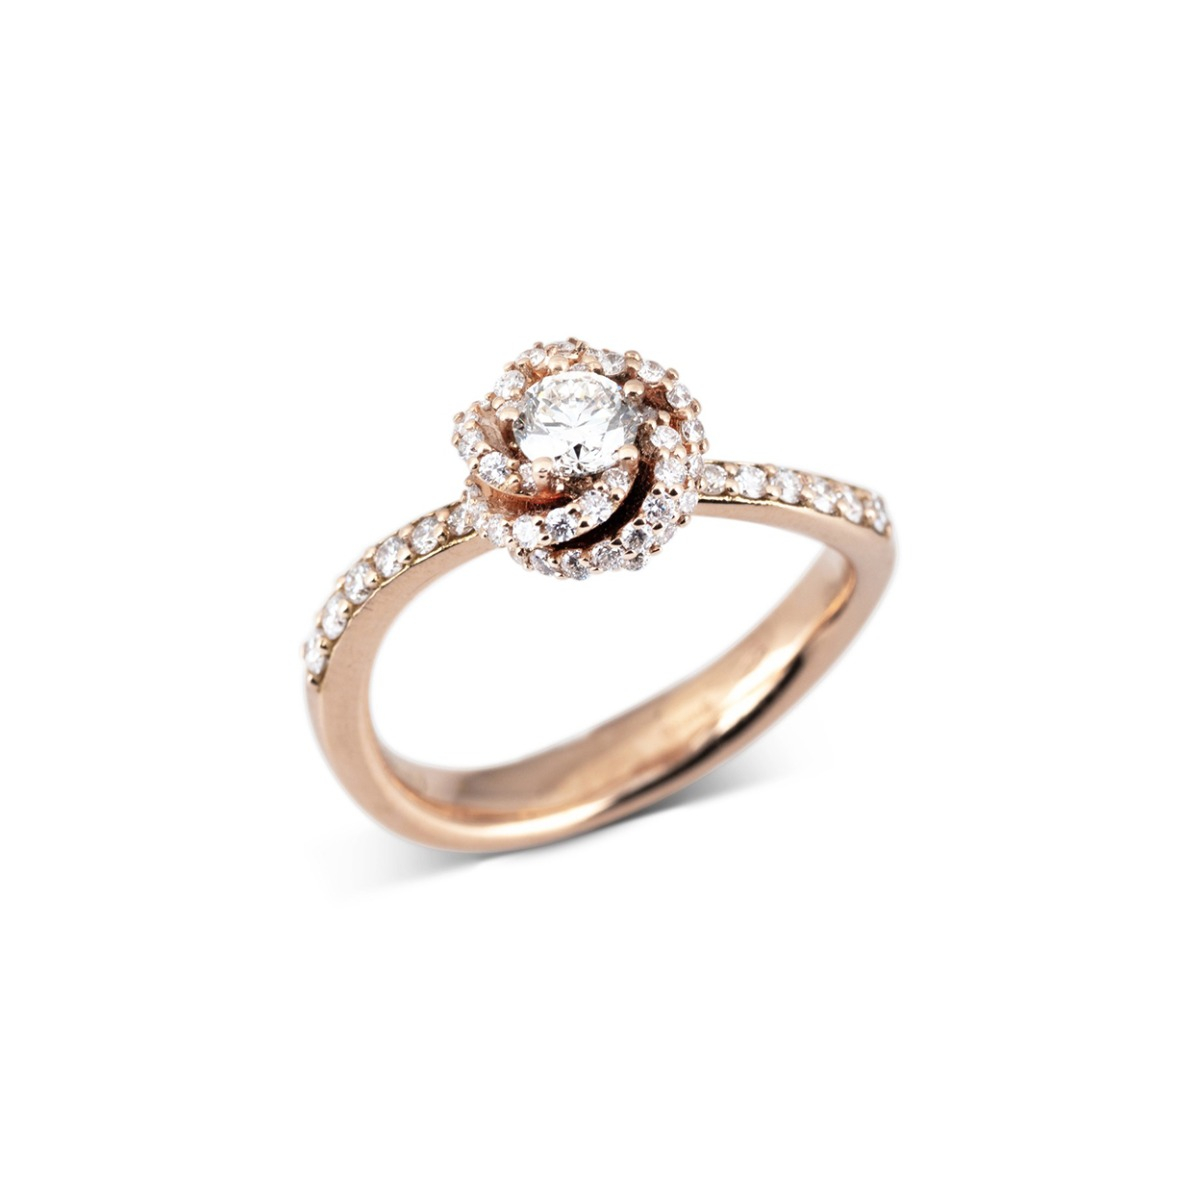 Rose Gold Blossom Ring with Diamonds